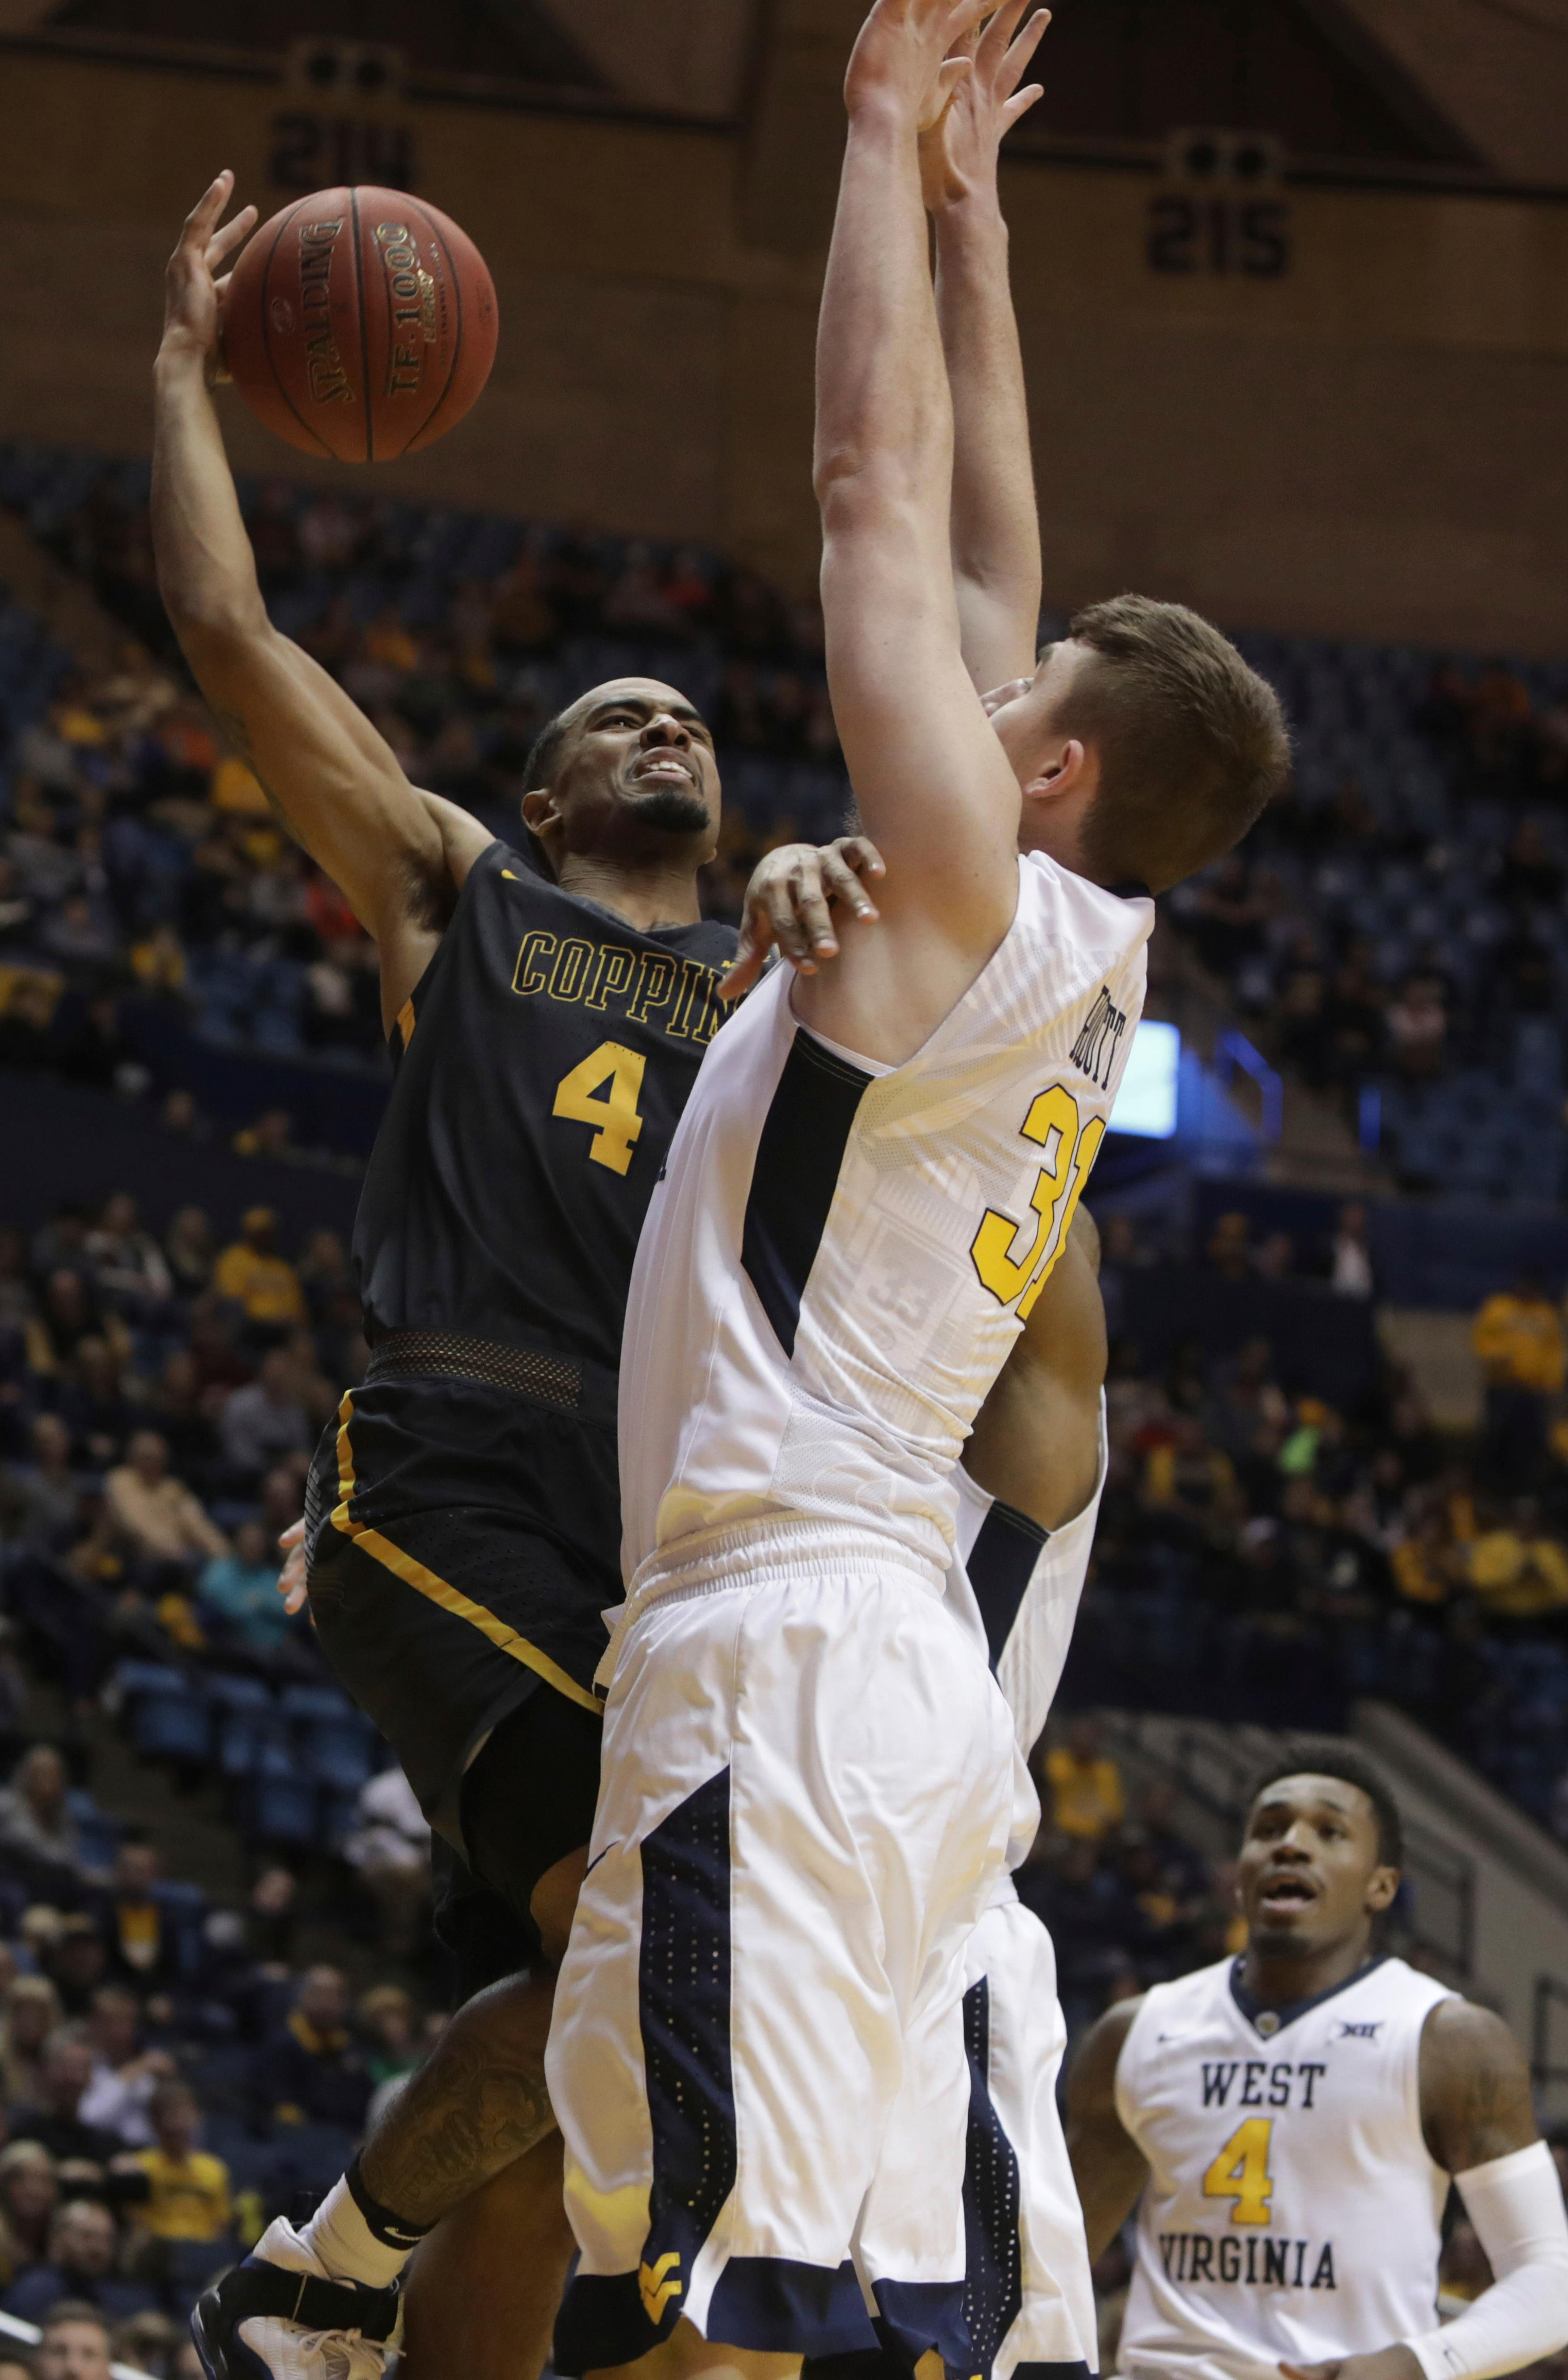 Coppin State guard Tre' Thomas (4) drives to the basket as West Virginia forward Logan Routt (31) defends during the first half of an NCAA college basketball game Wednesday, Dec. 20, 2017, in Morgantown, W.Va. (AP Photo/Raymond Thompson)